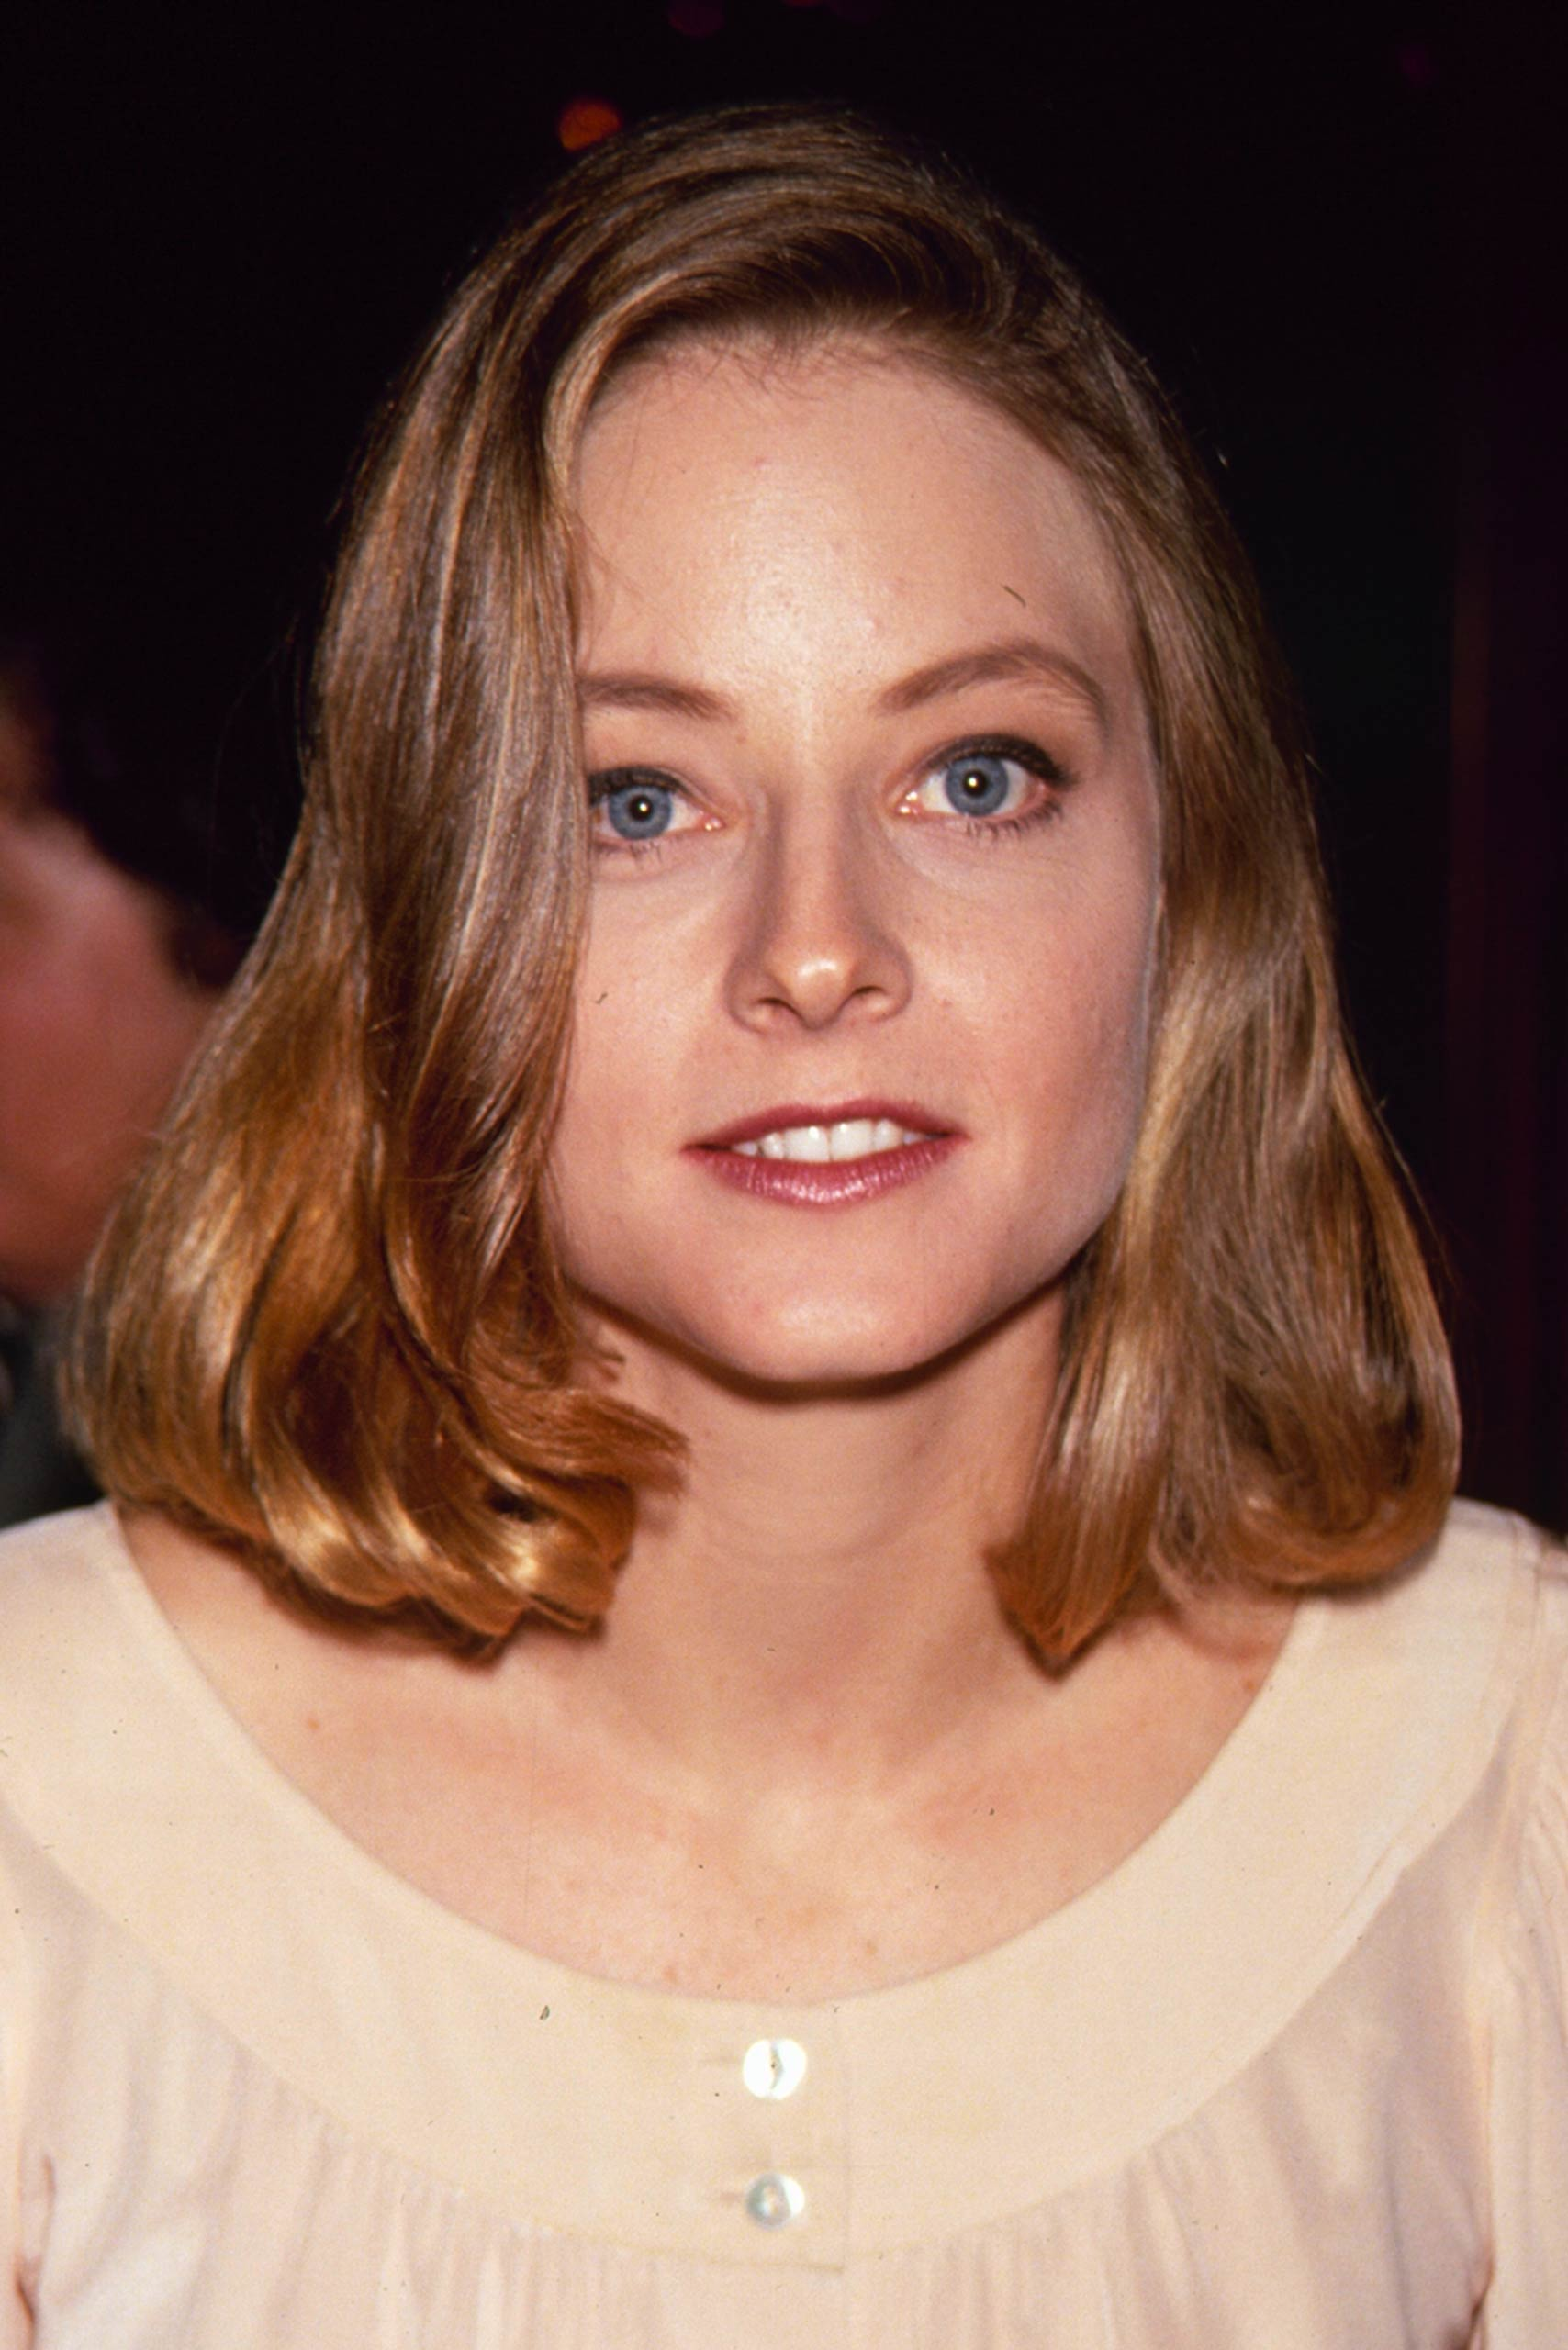 <strong>1989: Jodie Foster - <i>The Accused</i>                                   1992: Jodie Foster - <i>The Silence of the Lambs</i></strong>